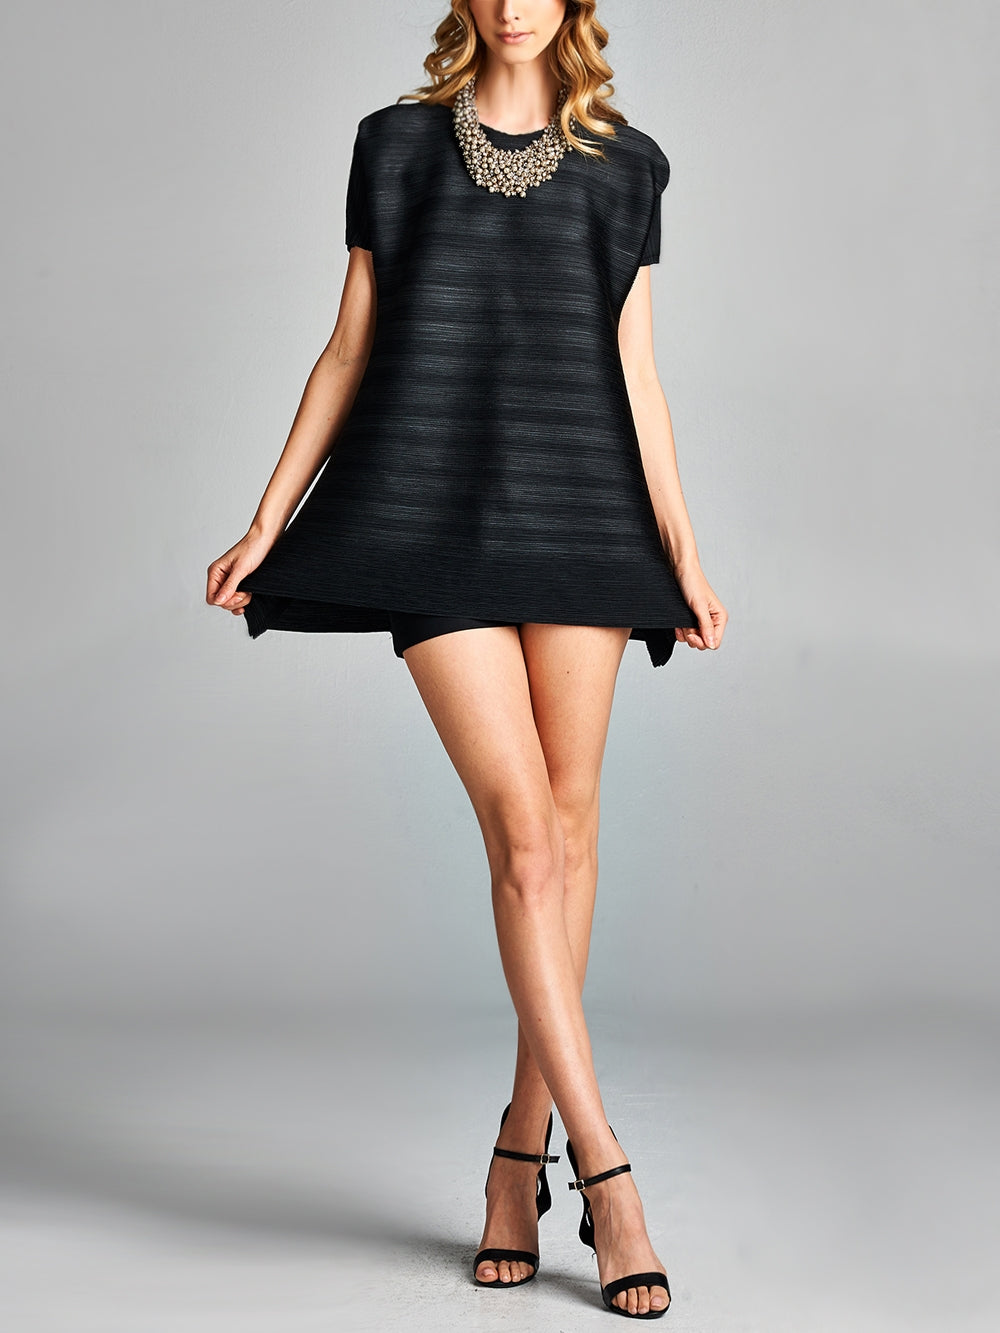 Pleated Black V Neck Short Sleeve  Top GJ-T5199